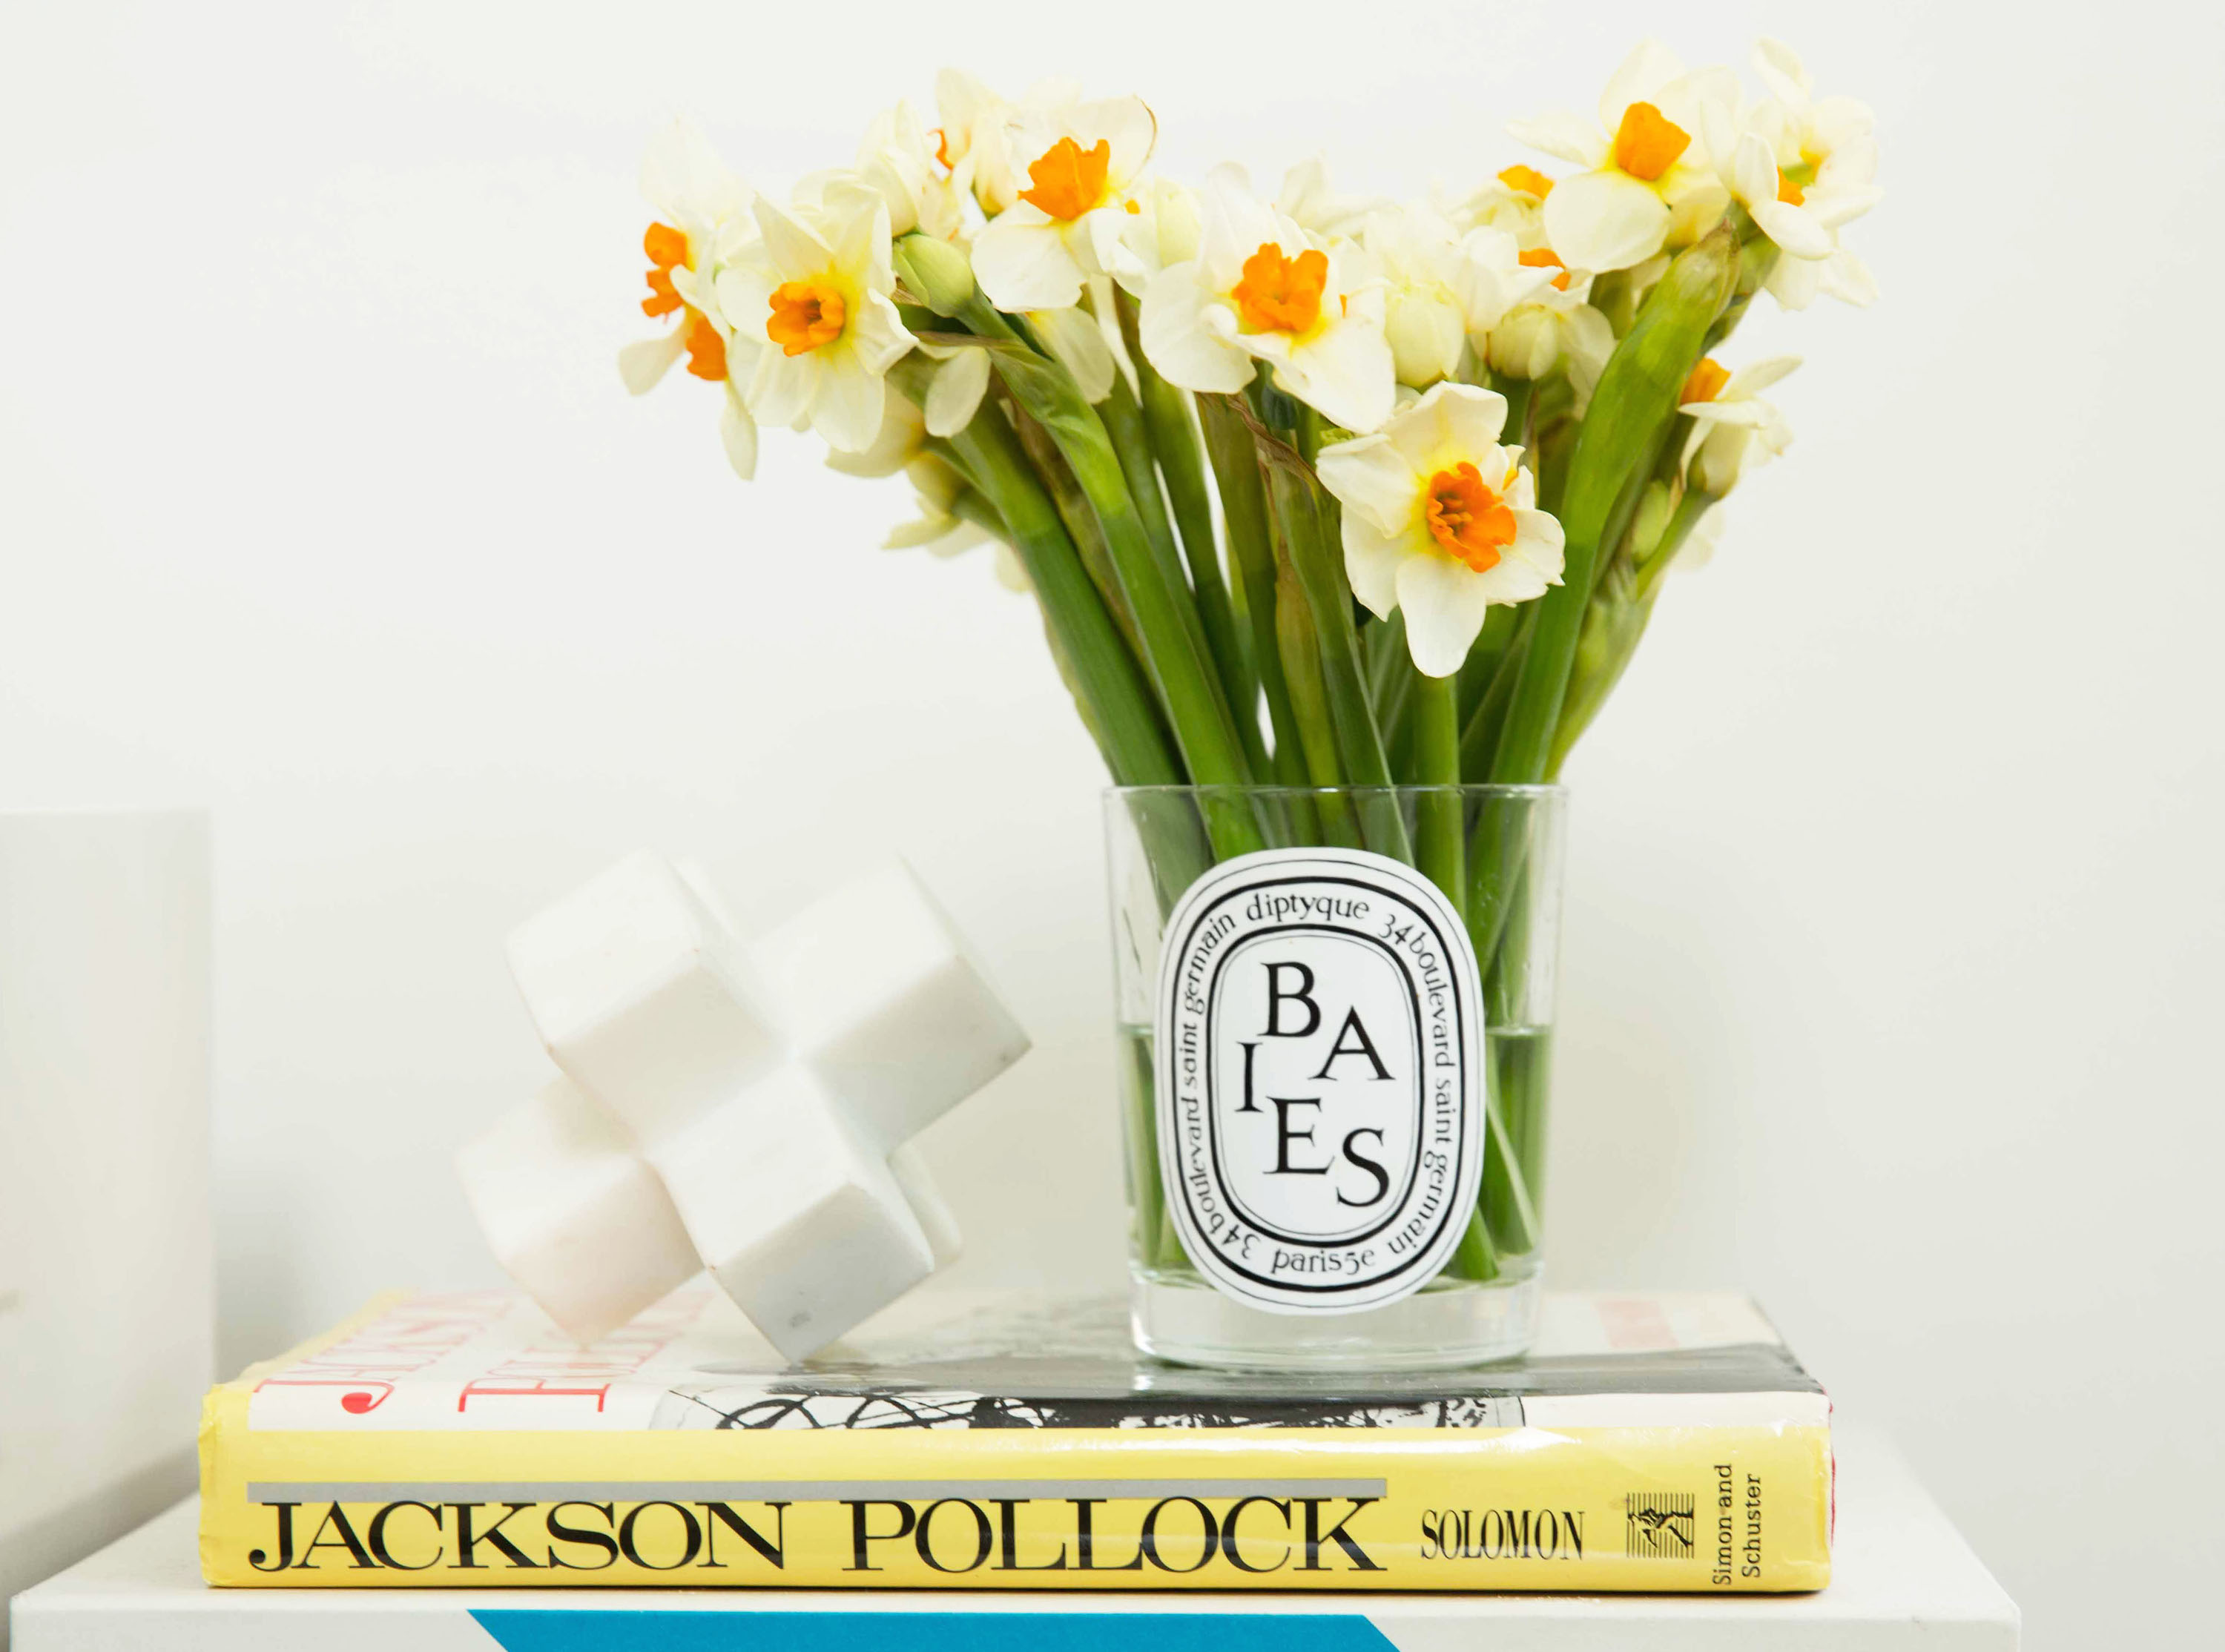 Diptyche Candle Vase